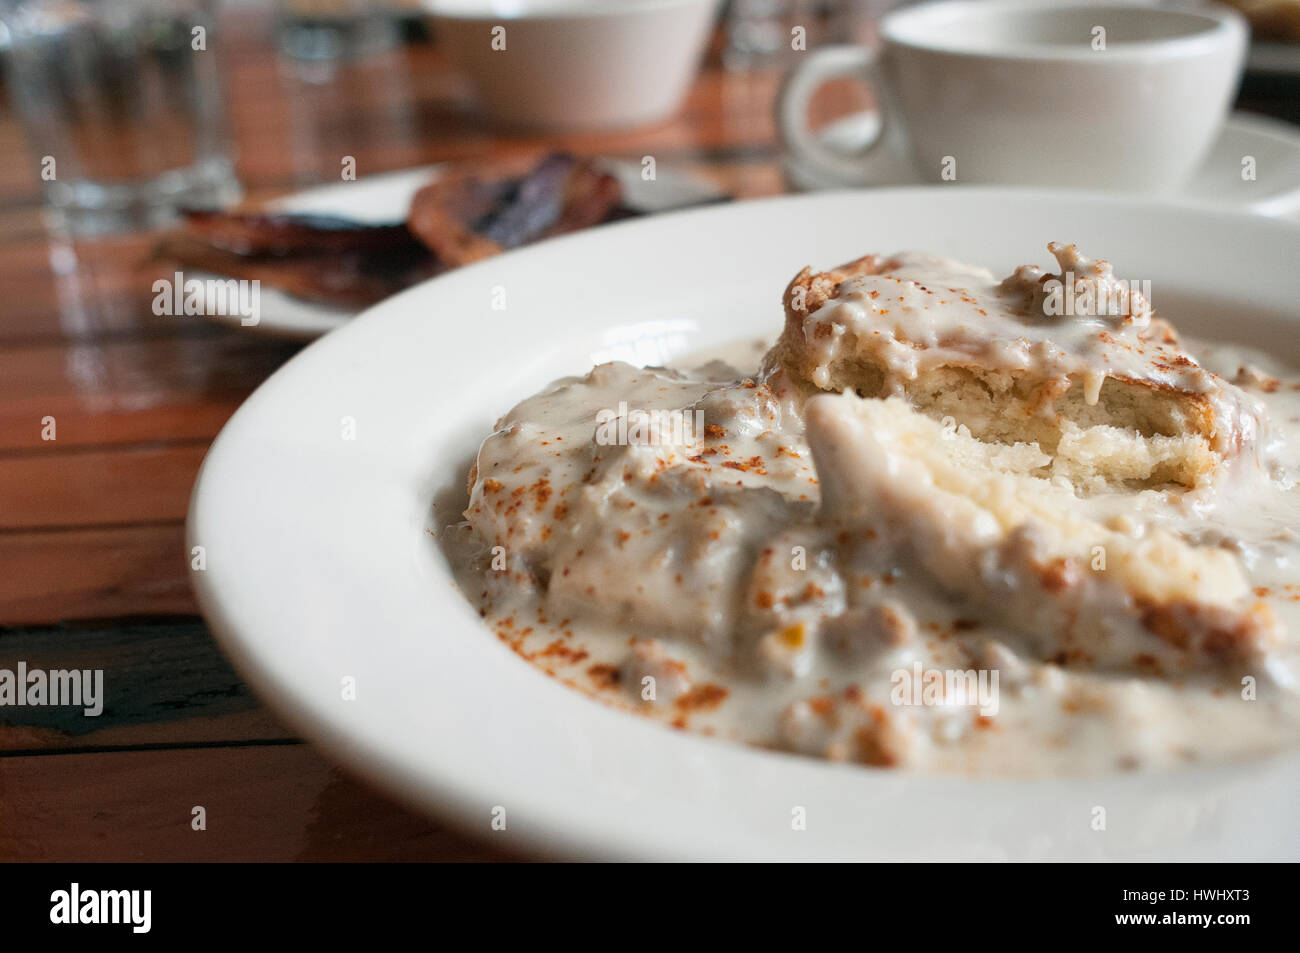 Biscuits and gravy breakfast at Community Plate in McMinnville, Oregon. - Stock Image